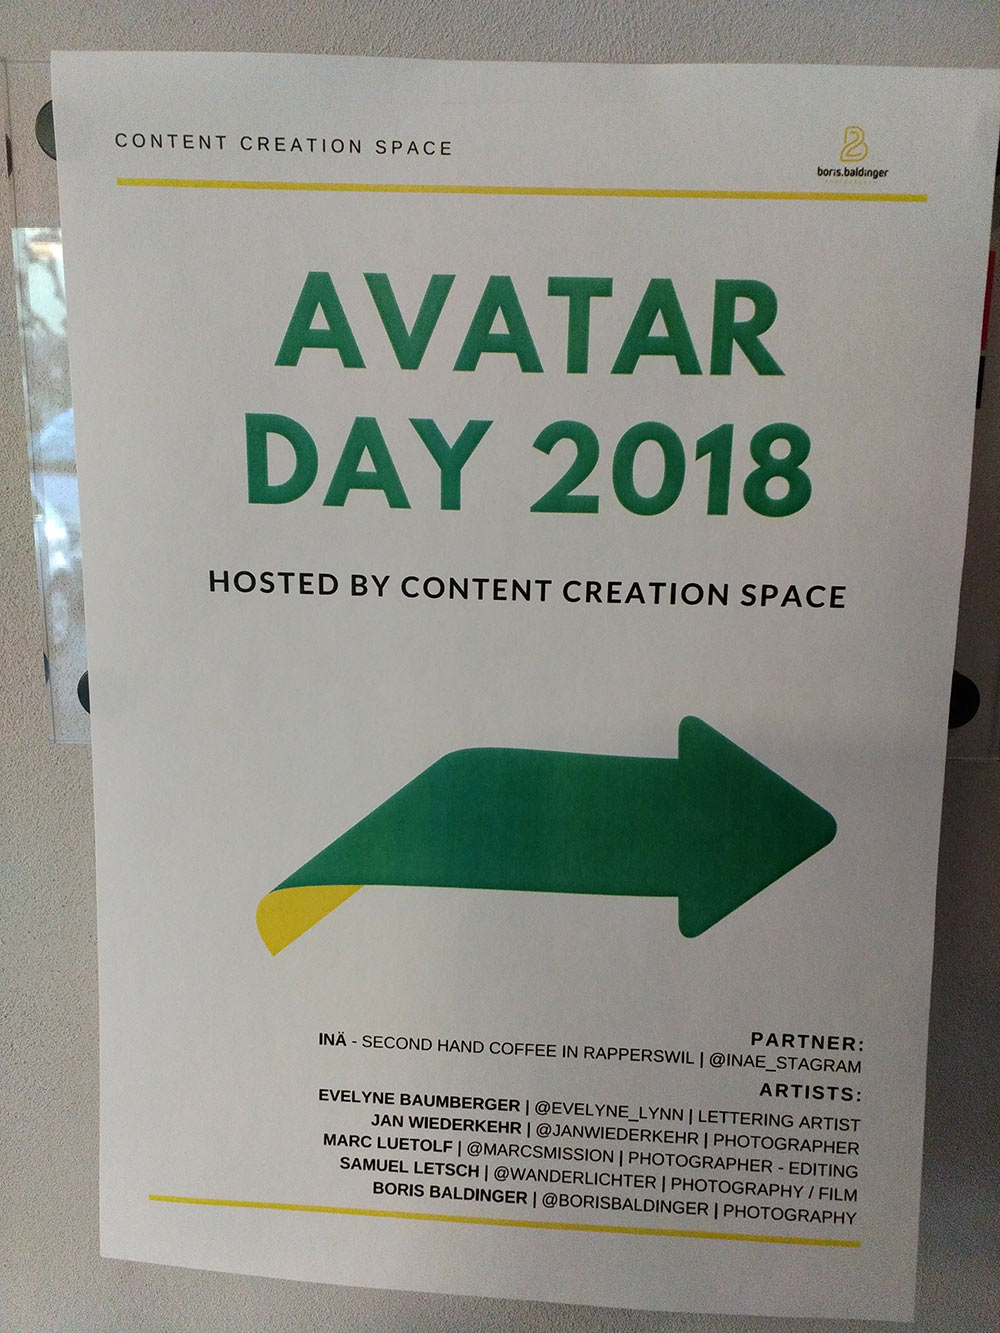 avatarday 2018 boris baldinger 5 - Avatarday 2018 mit Boris Baldinger